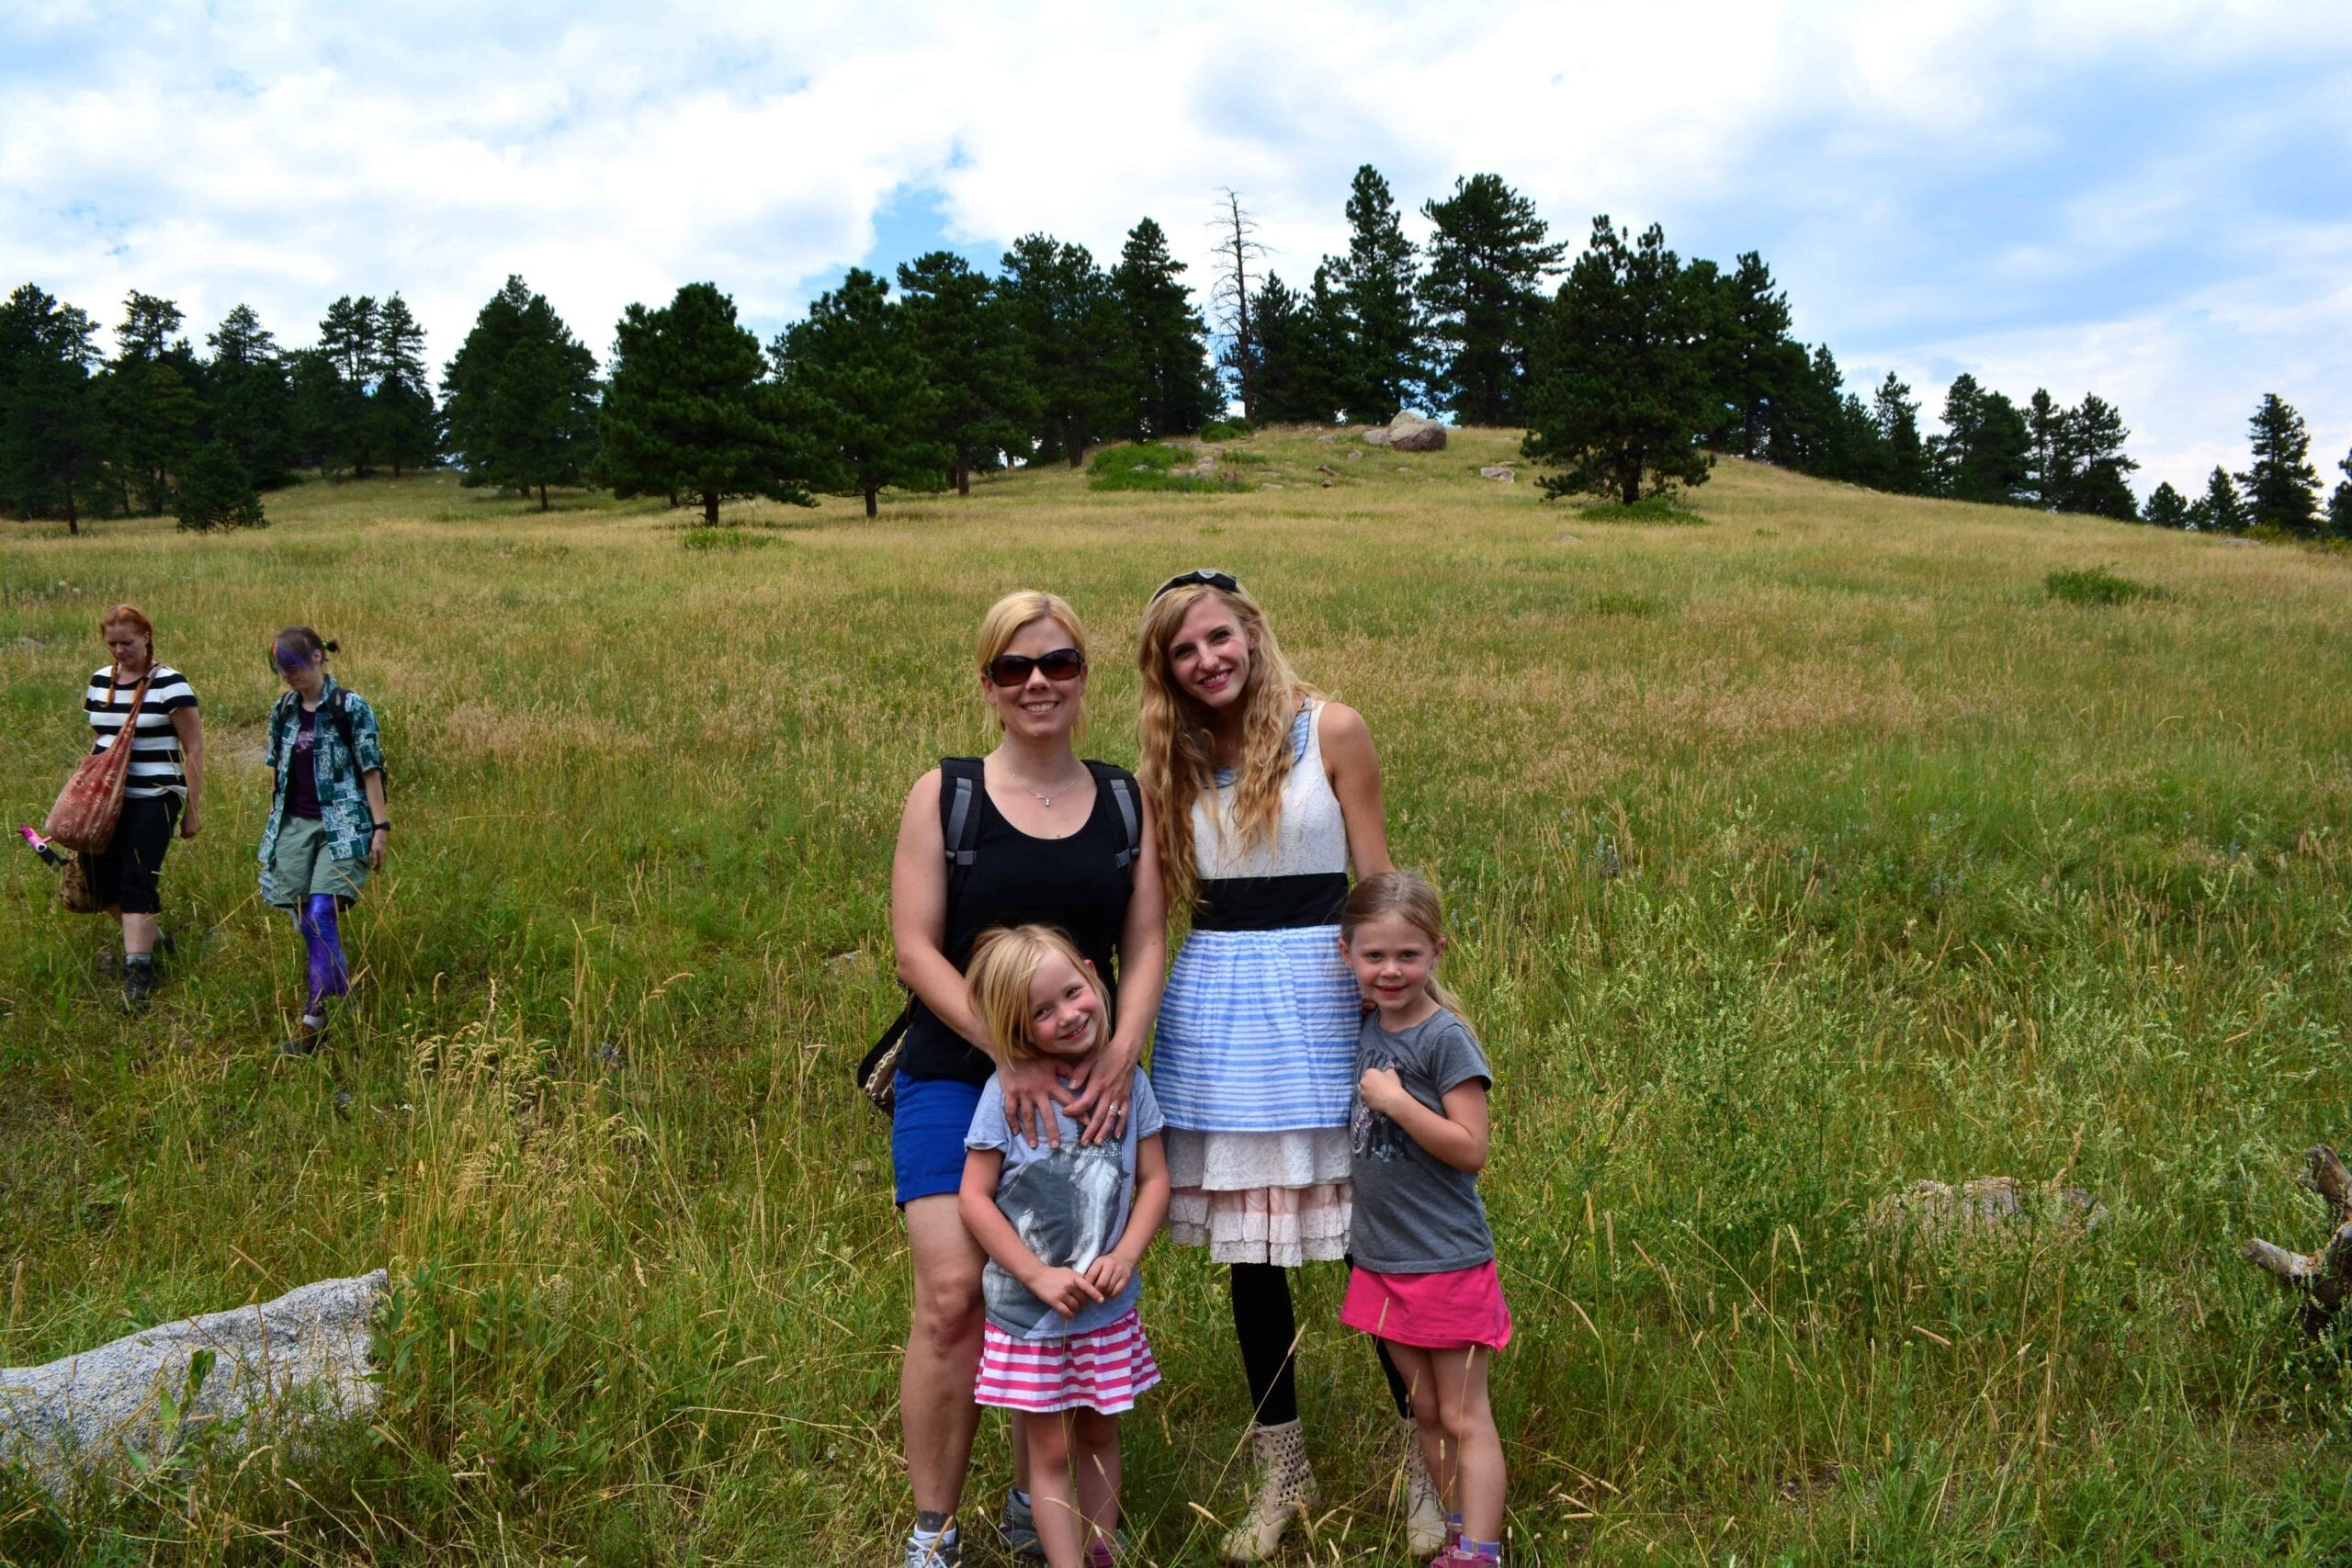 Colorado Theatre Hikes by Arts in the Open at Chautauqua Park Boulder is a great family event that combines the arts with the outdoors.